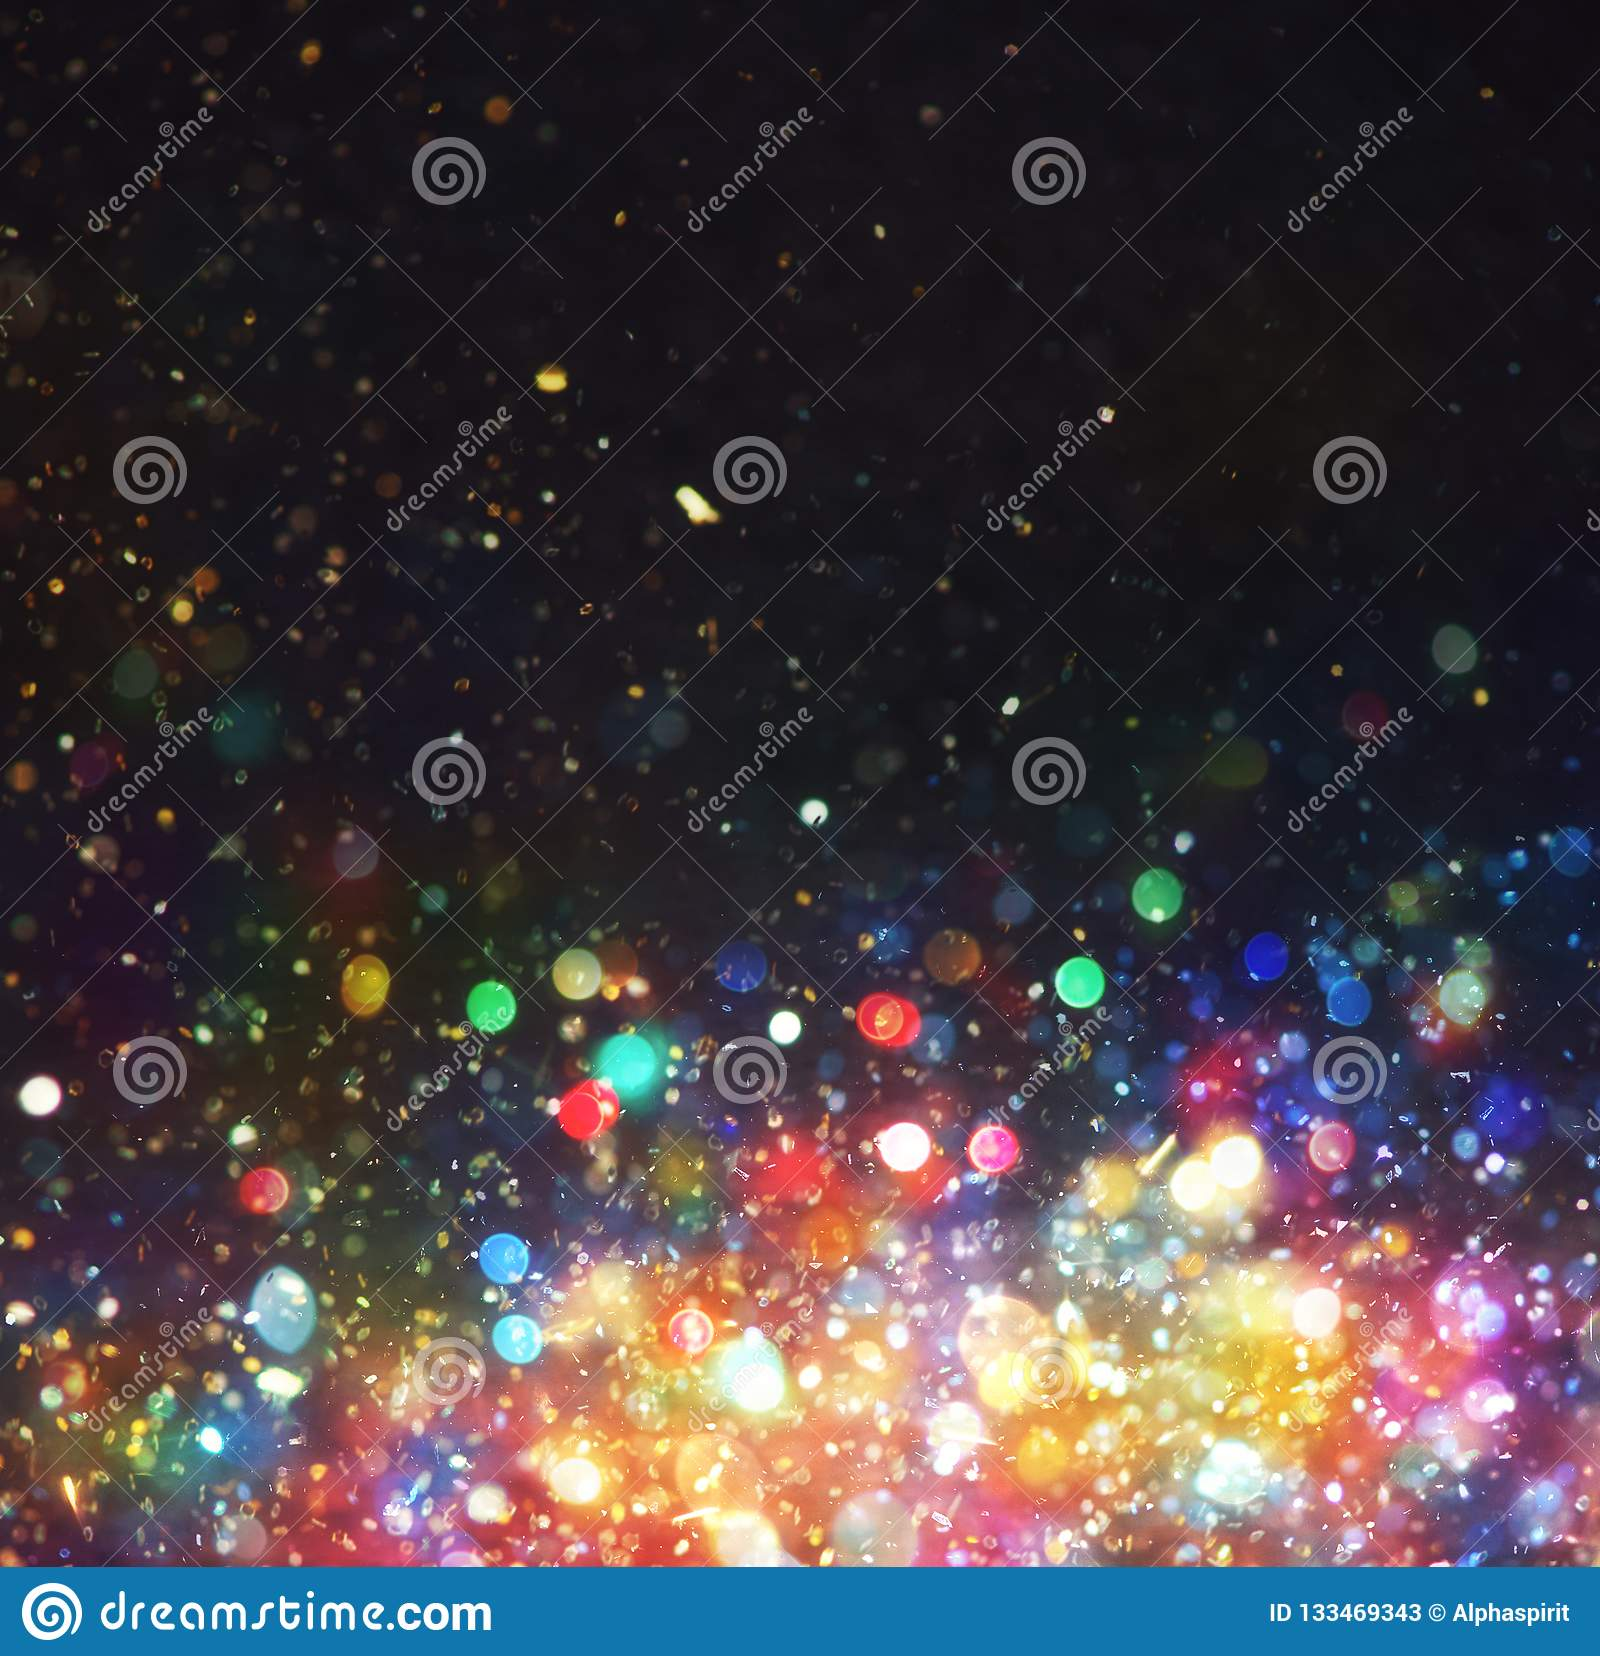 Abstract Christmas background with colorful lights in the night